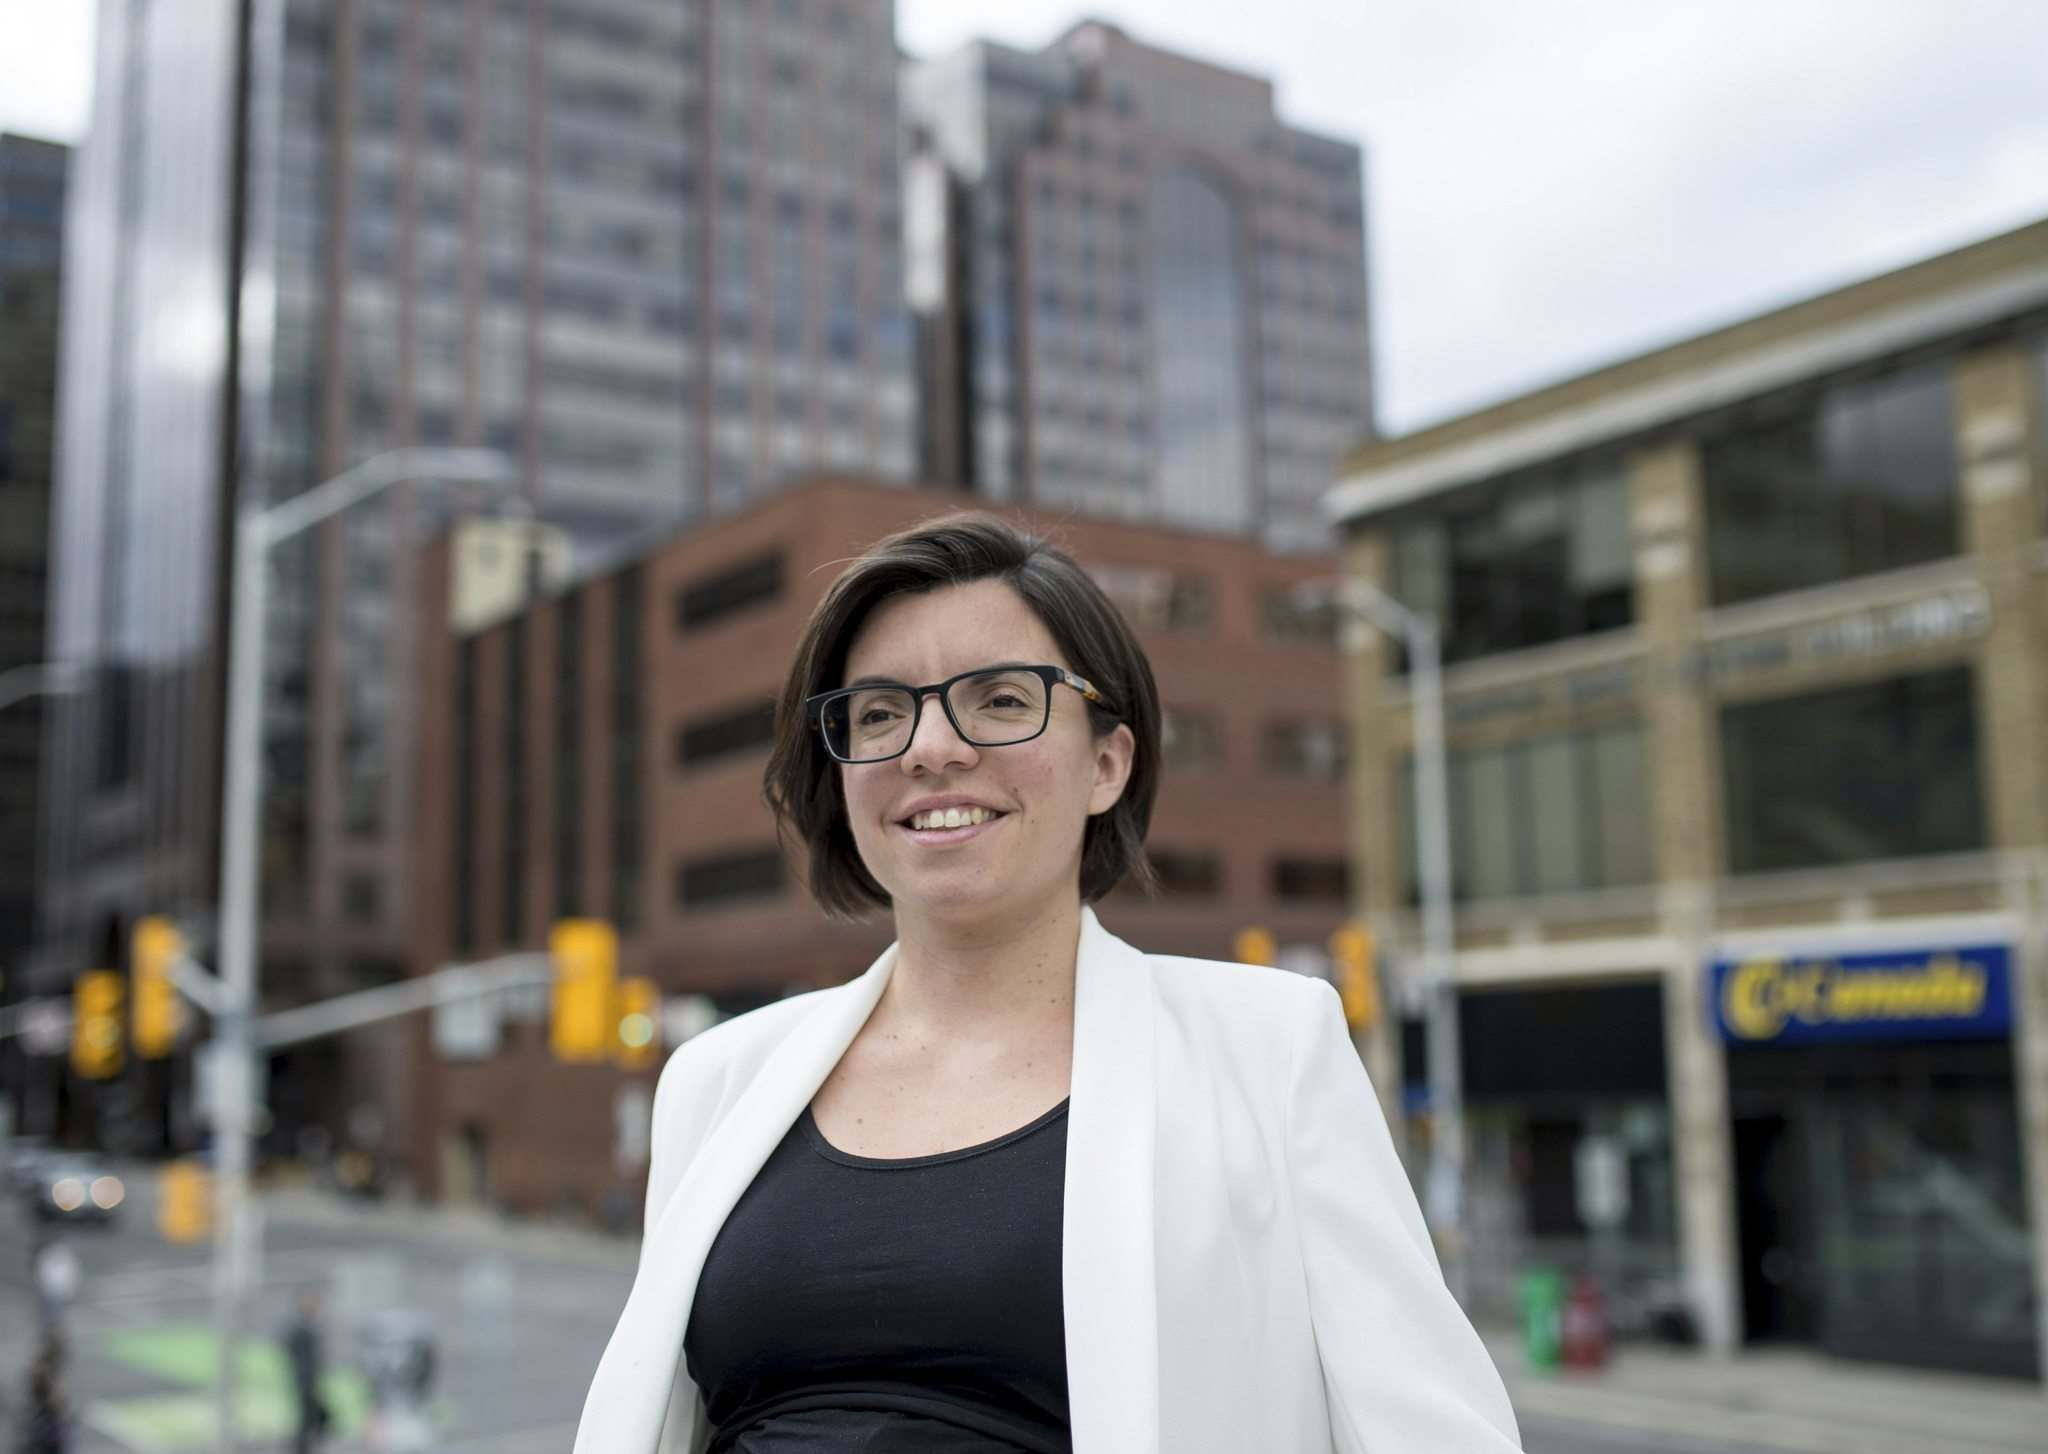 Manitoba Ndp Mp Niki Ashton Shares Her Vision For Canada Winnipeg Free Press